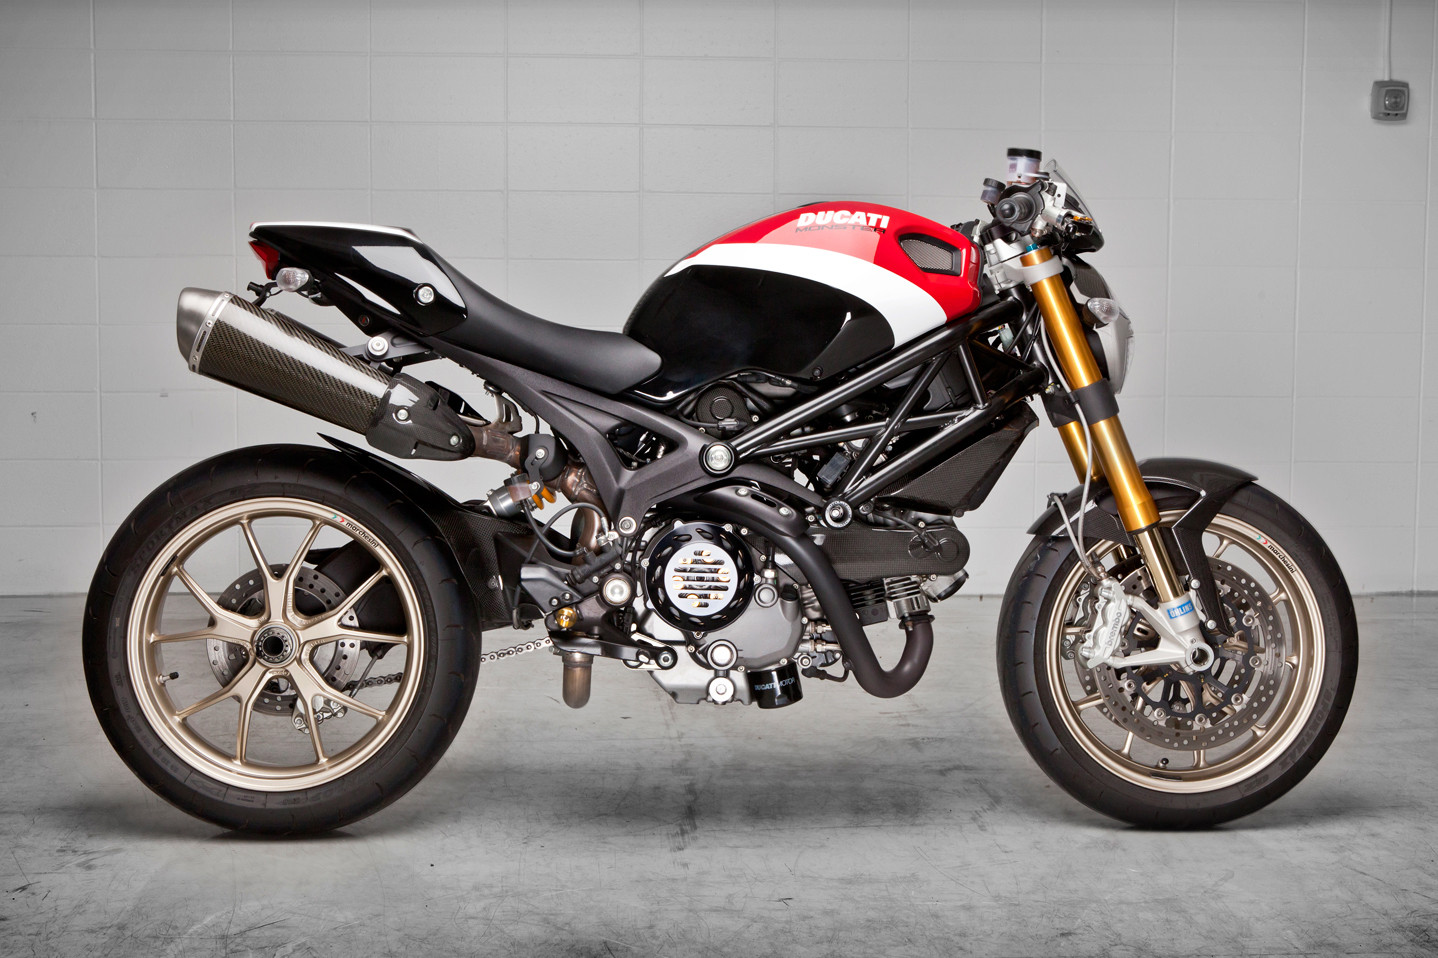 ducati ducati monster 1100s moto zombdrive com. Black Bedroom Furniture Sets. Home Design Ideas